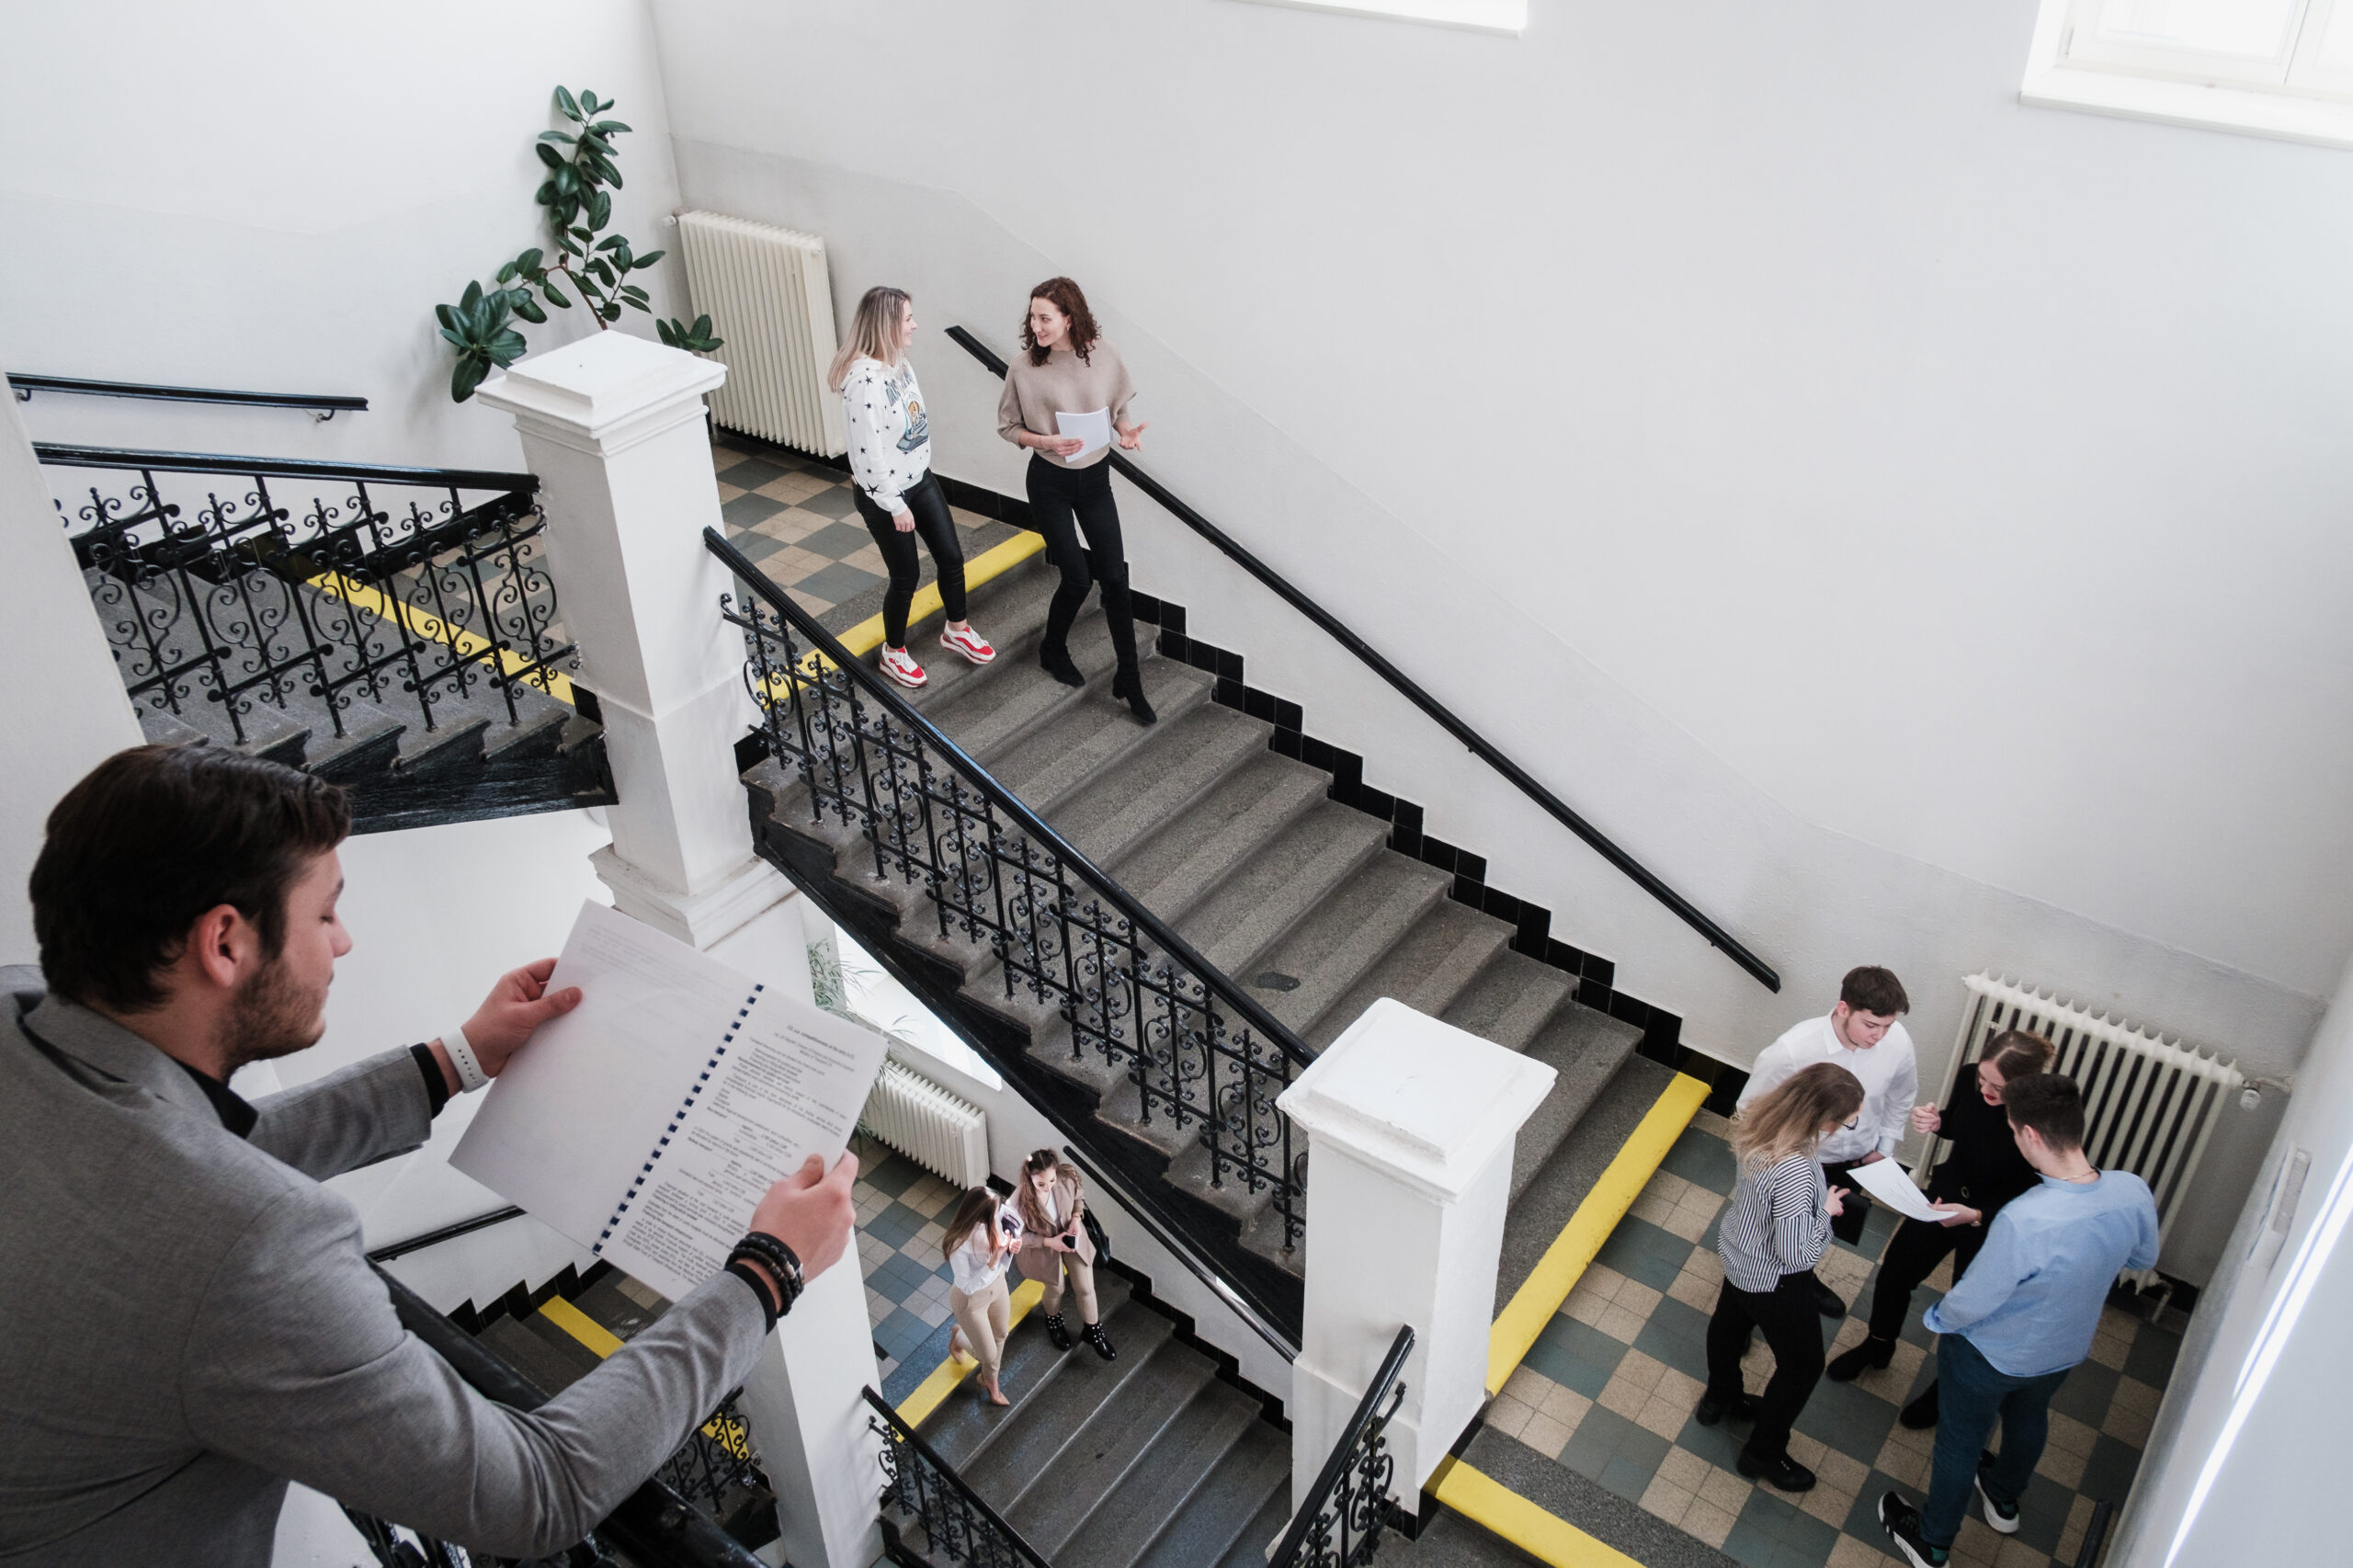 University hallway in Prague will soon welcome its first UPJS students